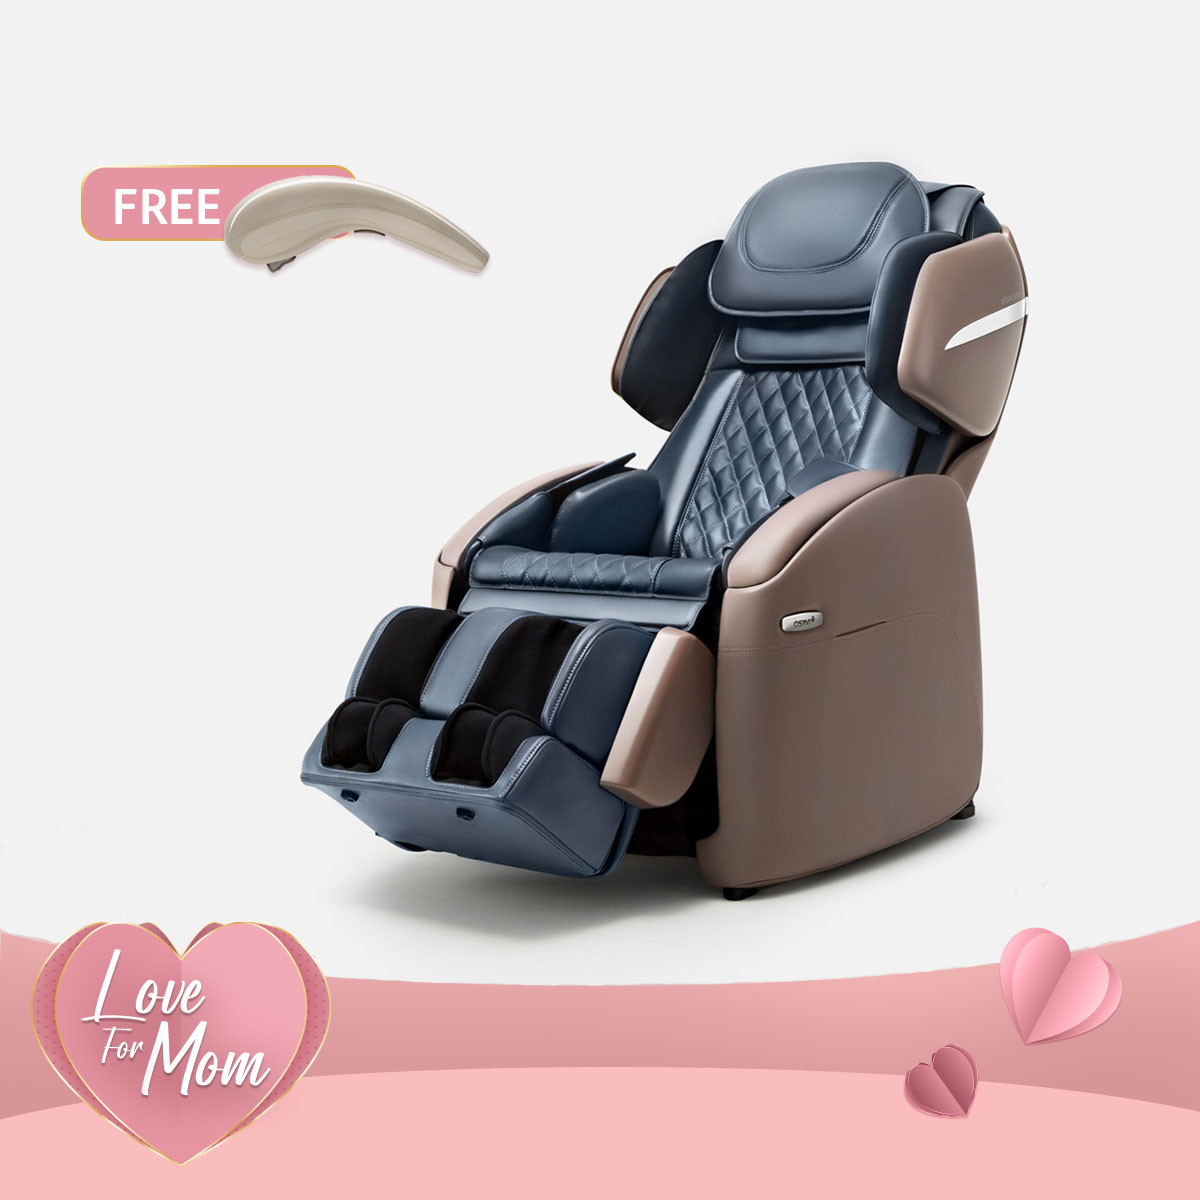 uNano Series Massage Chair